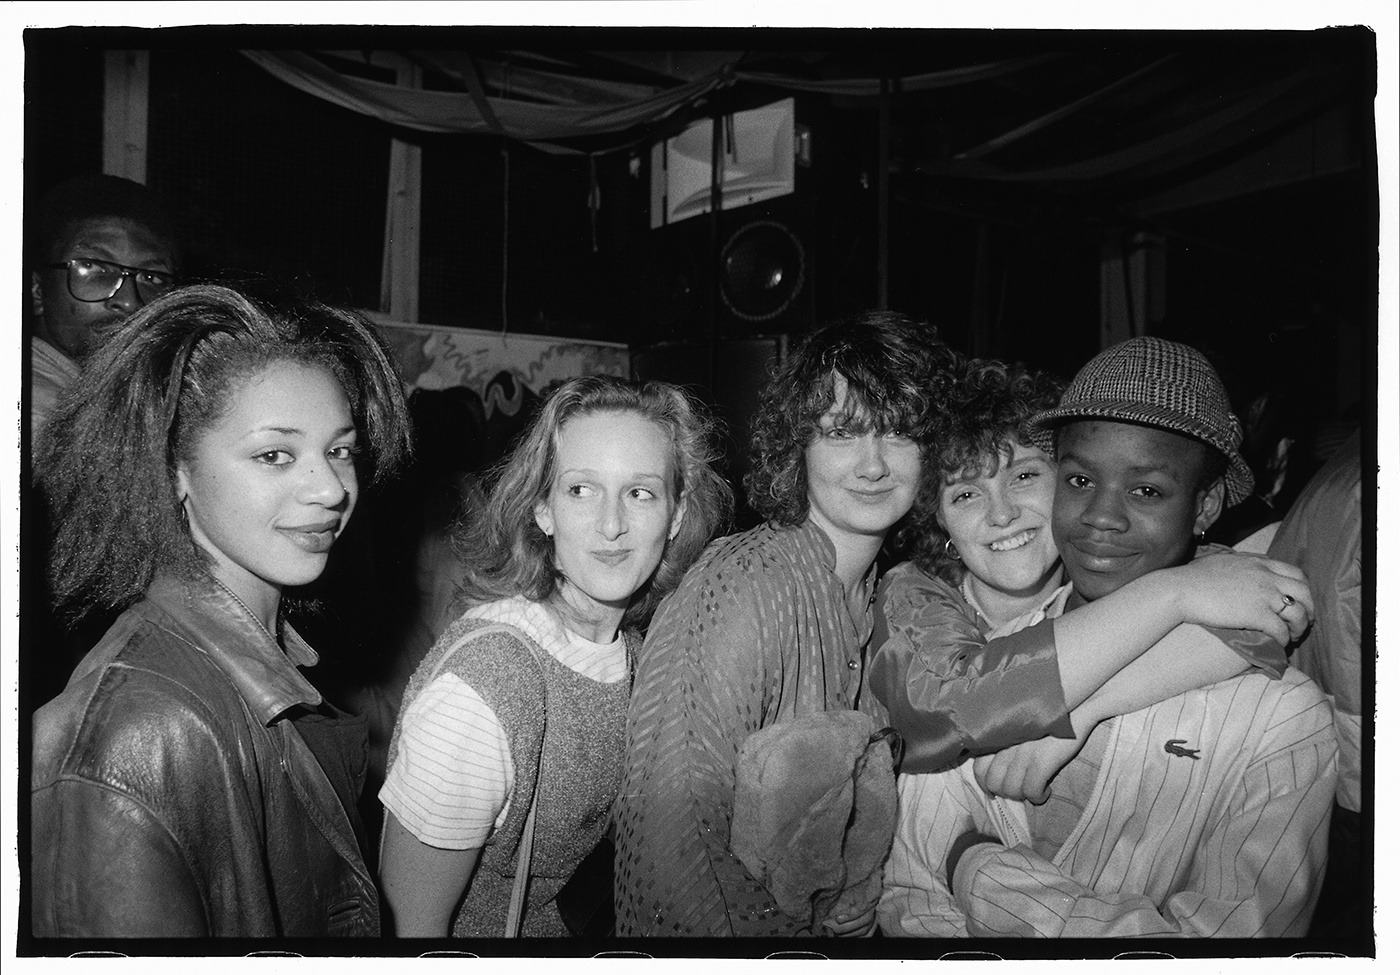 Group of b-boys and b-girls on a night out at Dug Out, Bristol, 1985 by Beezer